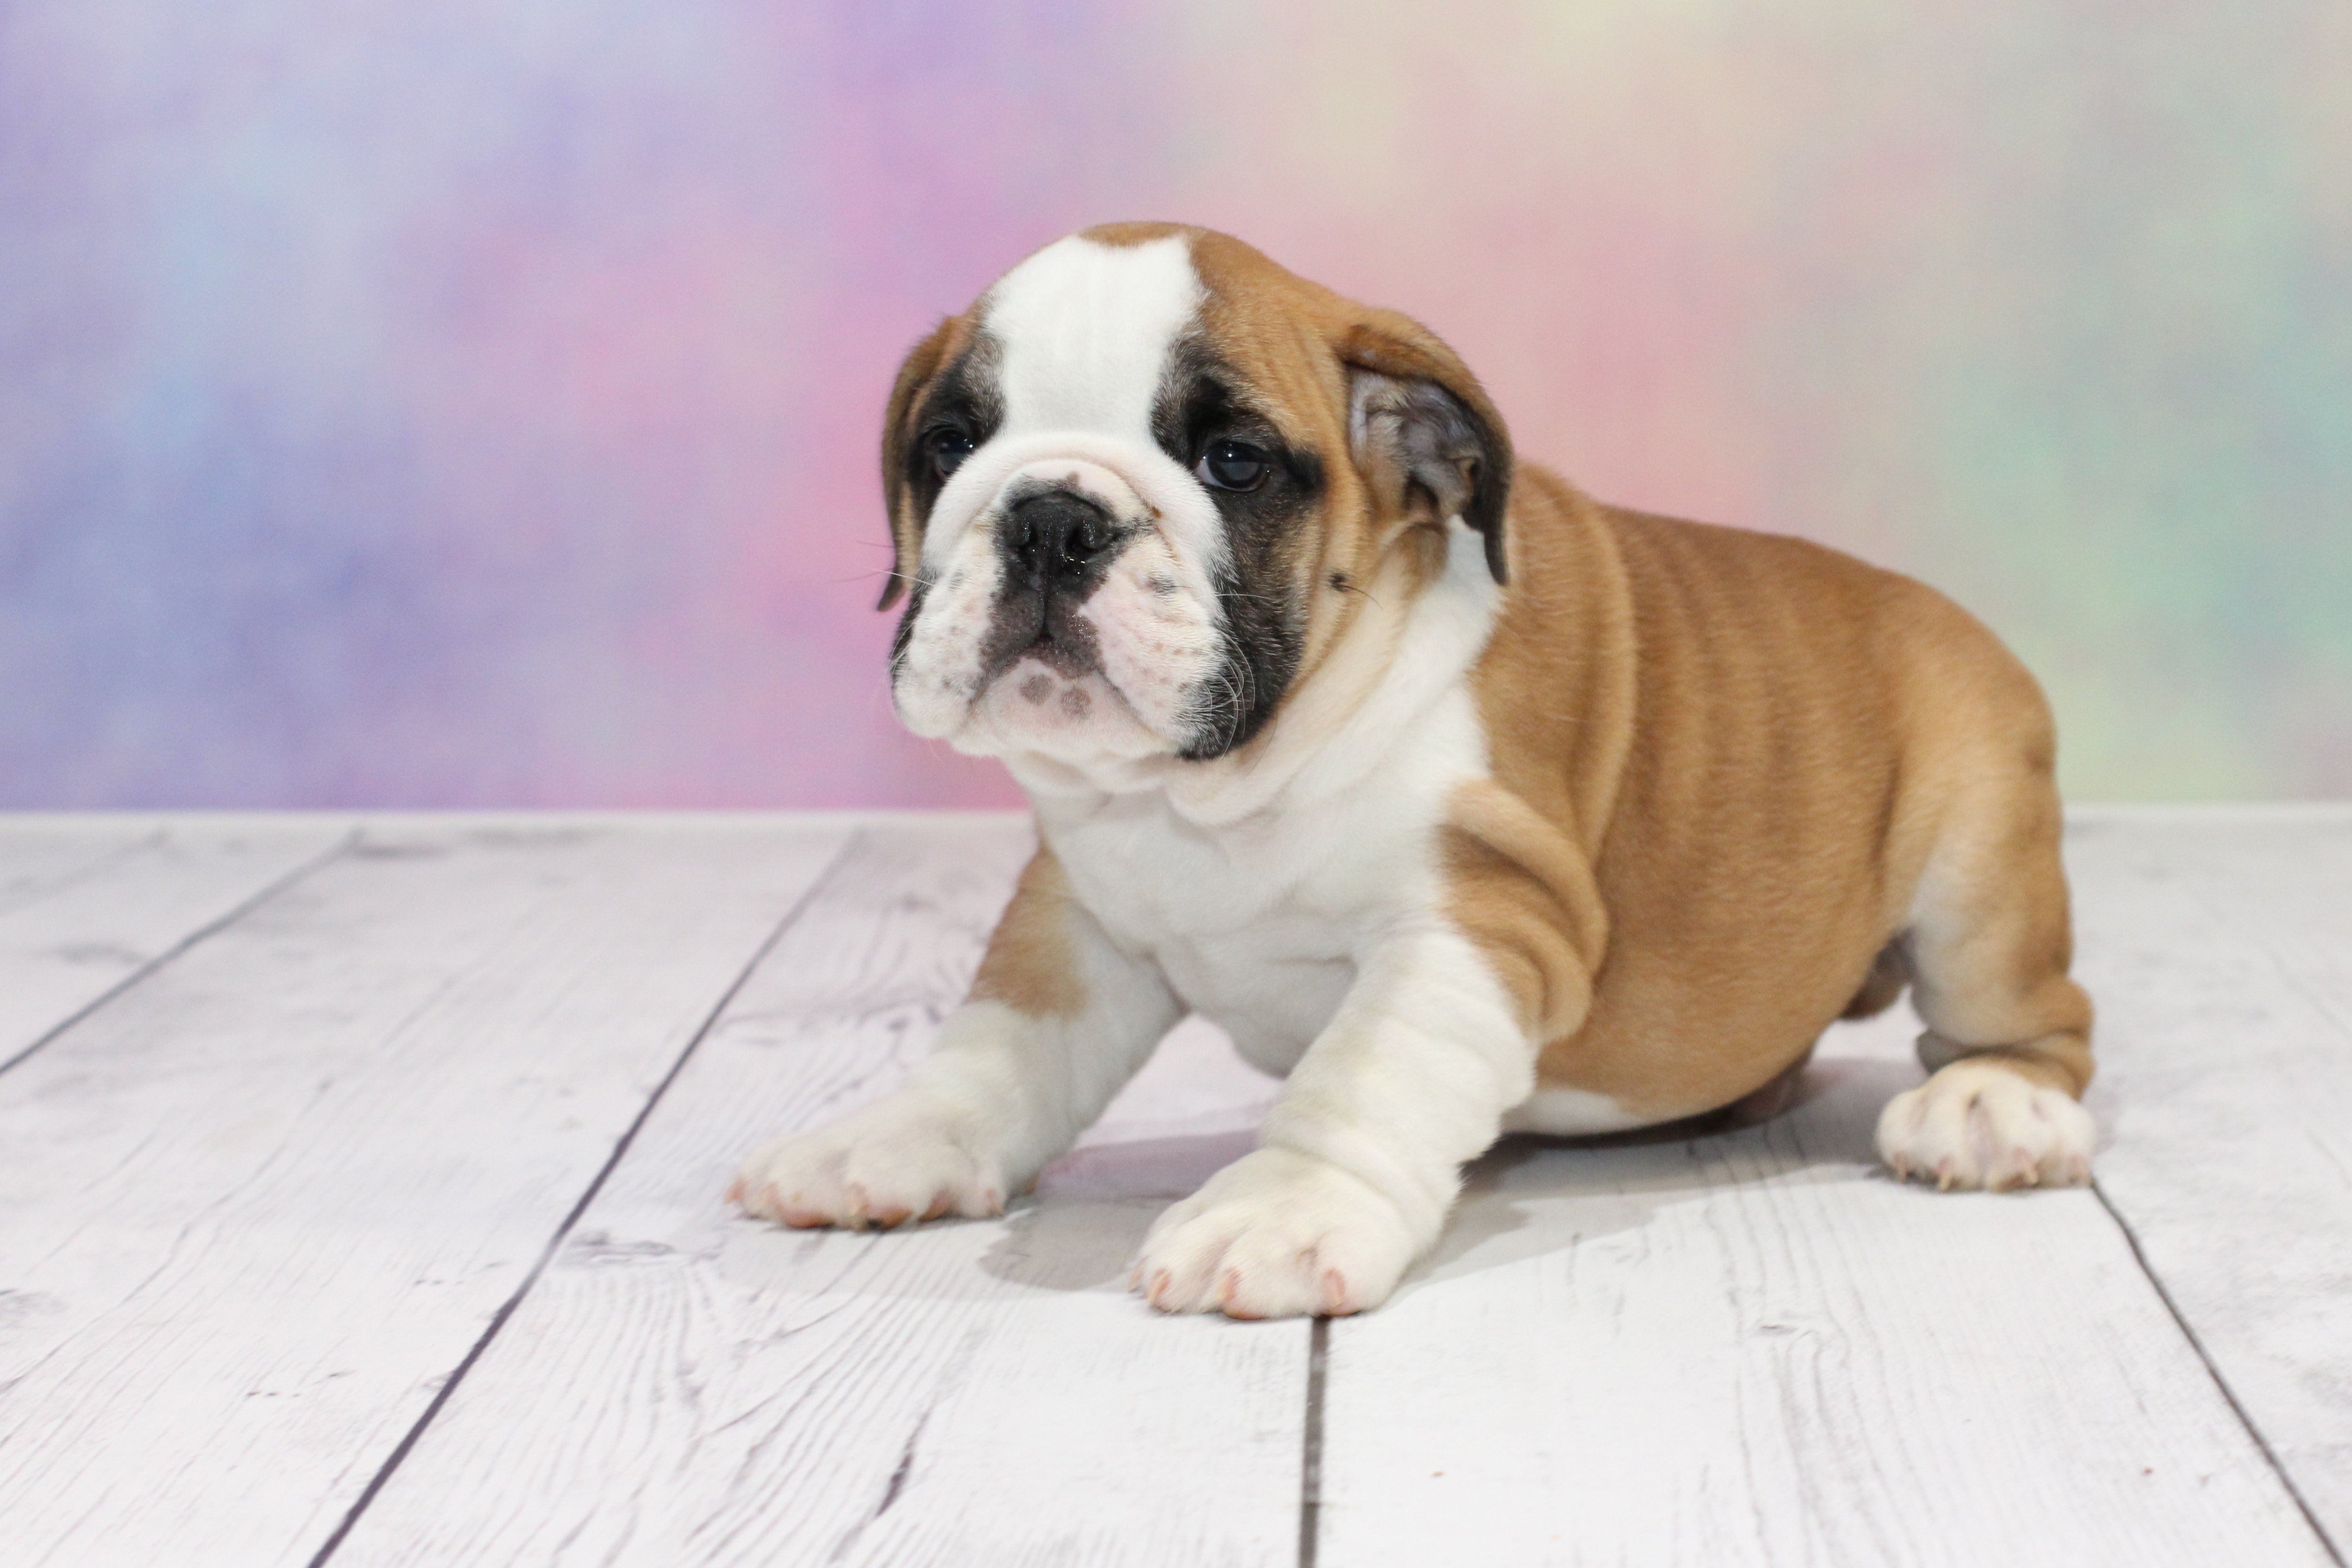 English Bulldog Puppies For Sale Do Yourself A Favor And Get One Of These Loyal Pups